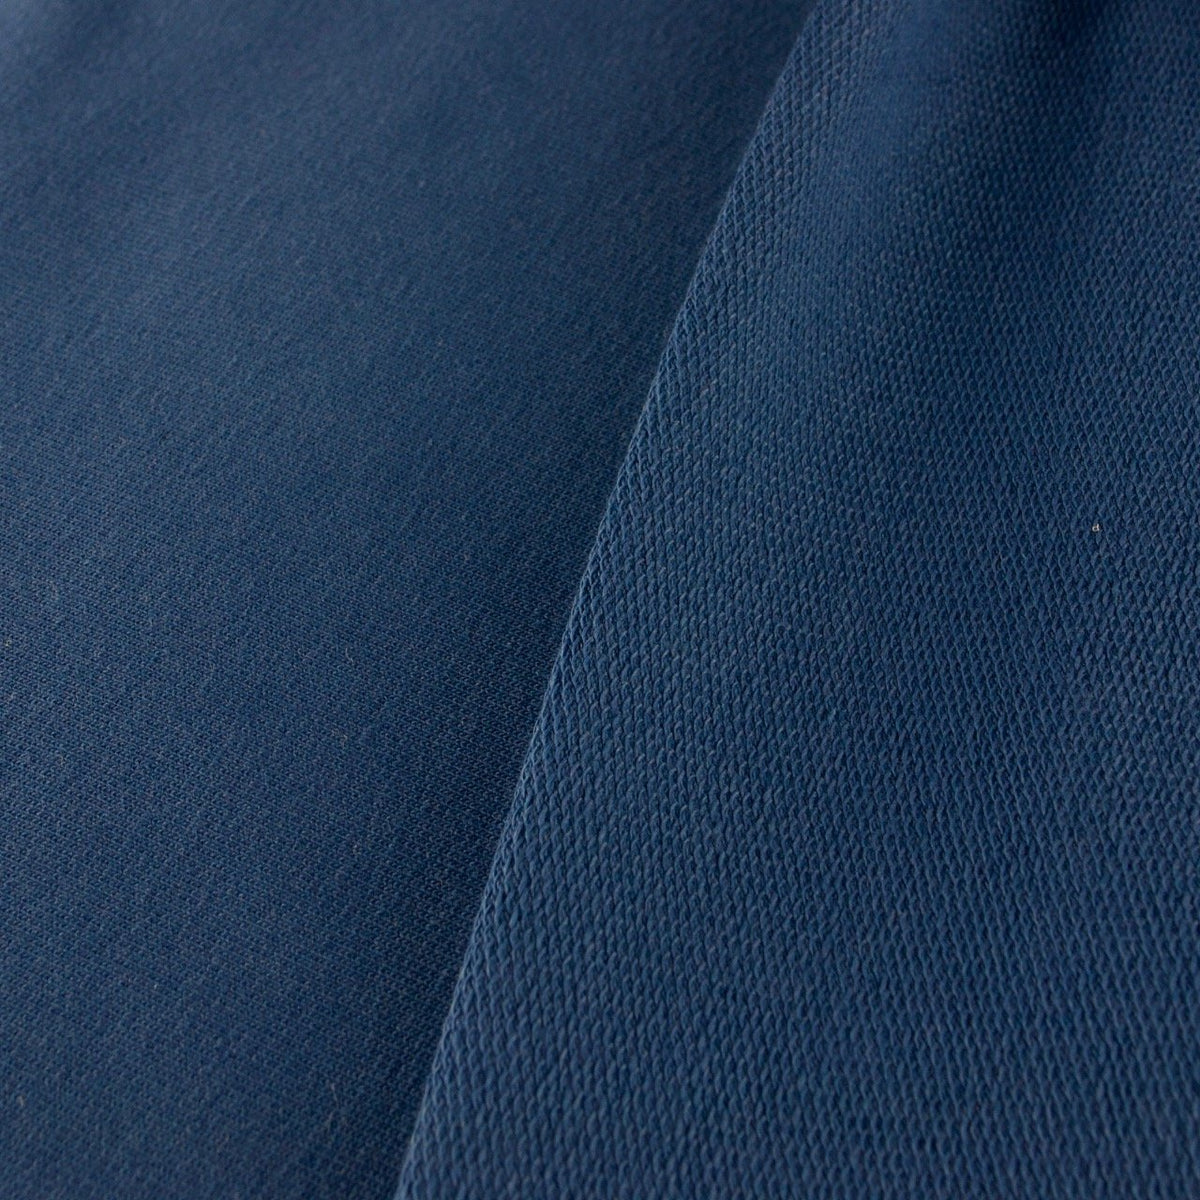 French Terry - Denim Blue - MaaiDesign